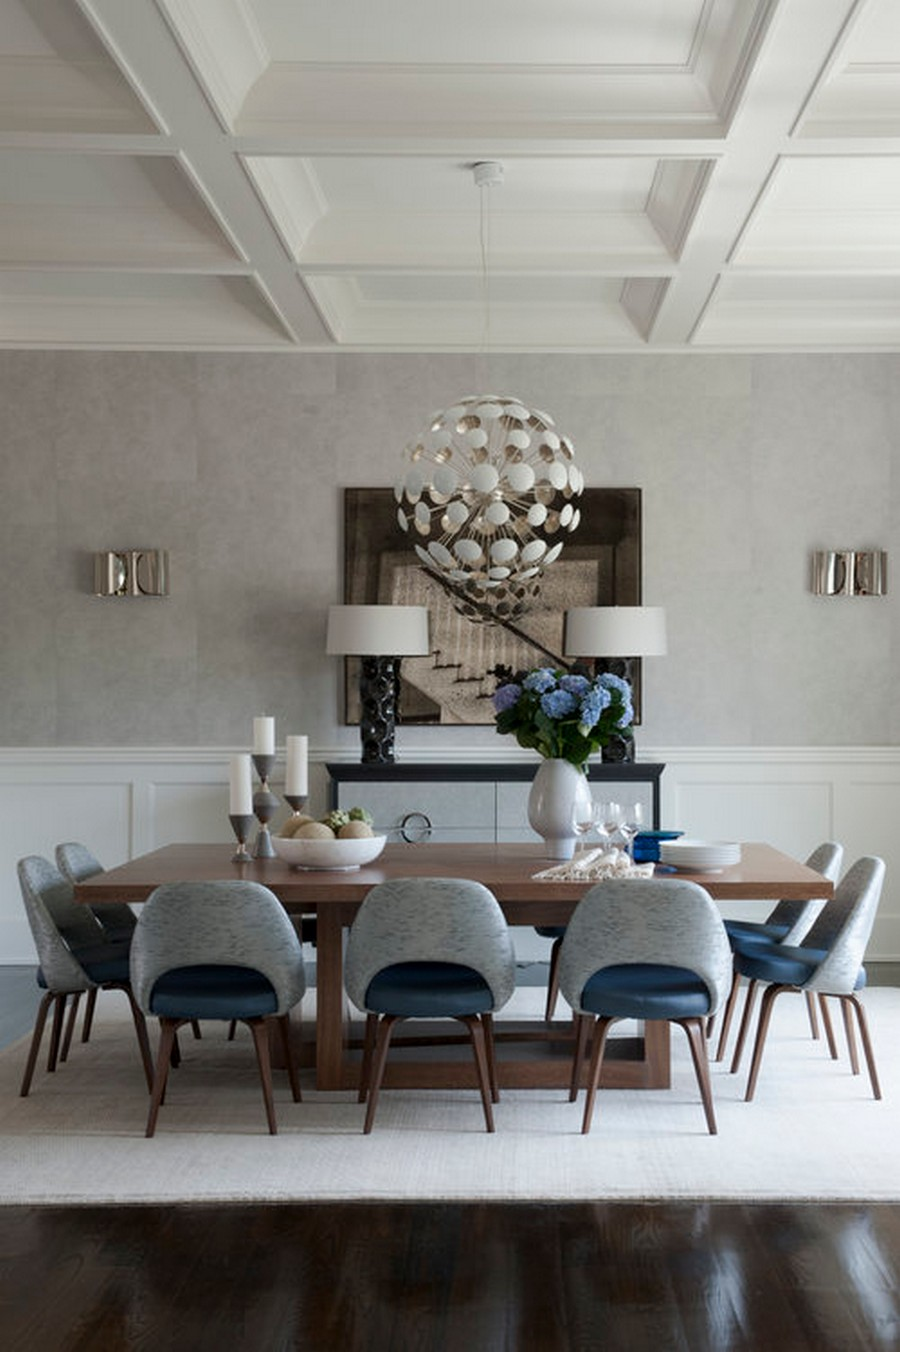 Be Inspired by Amie Weitzman's Fabulous Luxury Design Interiors amie weitzman Be Inspired by Amie Weitzman's Fabulous Luxury Design Interiors Be Inspired by Amie Weitzmans Fabulous Luxury Design Interiors